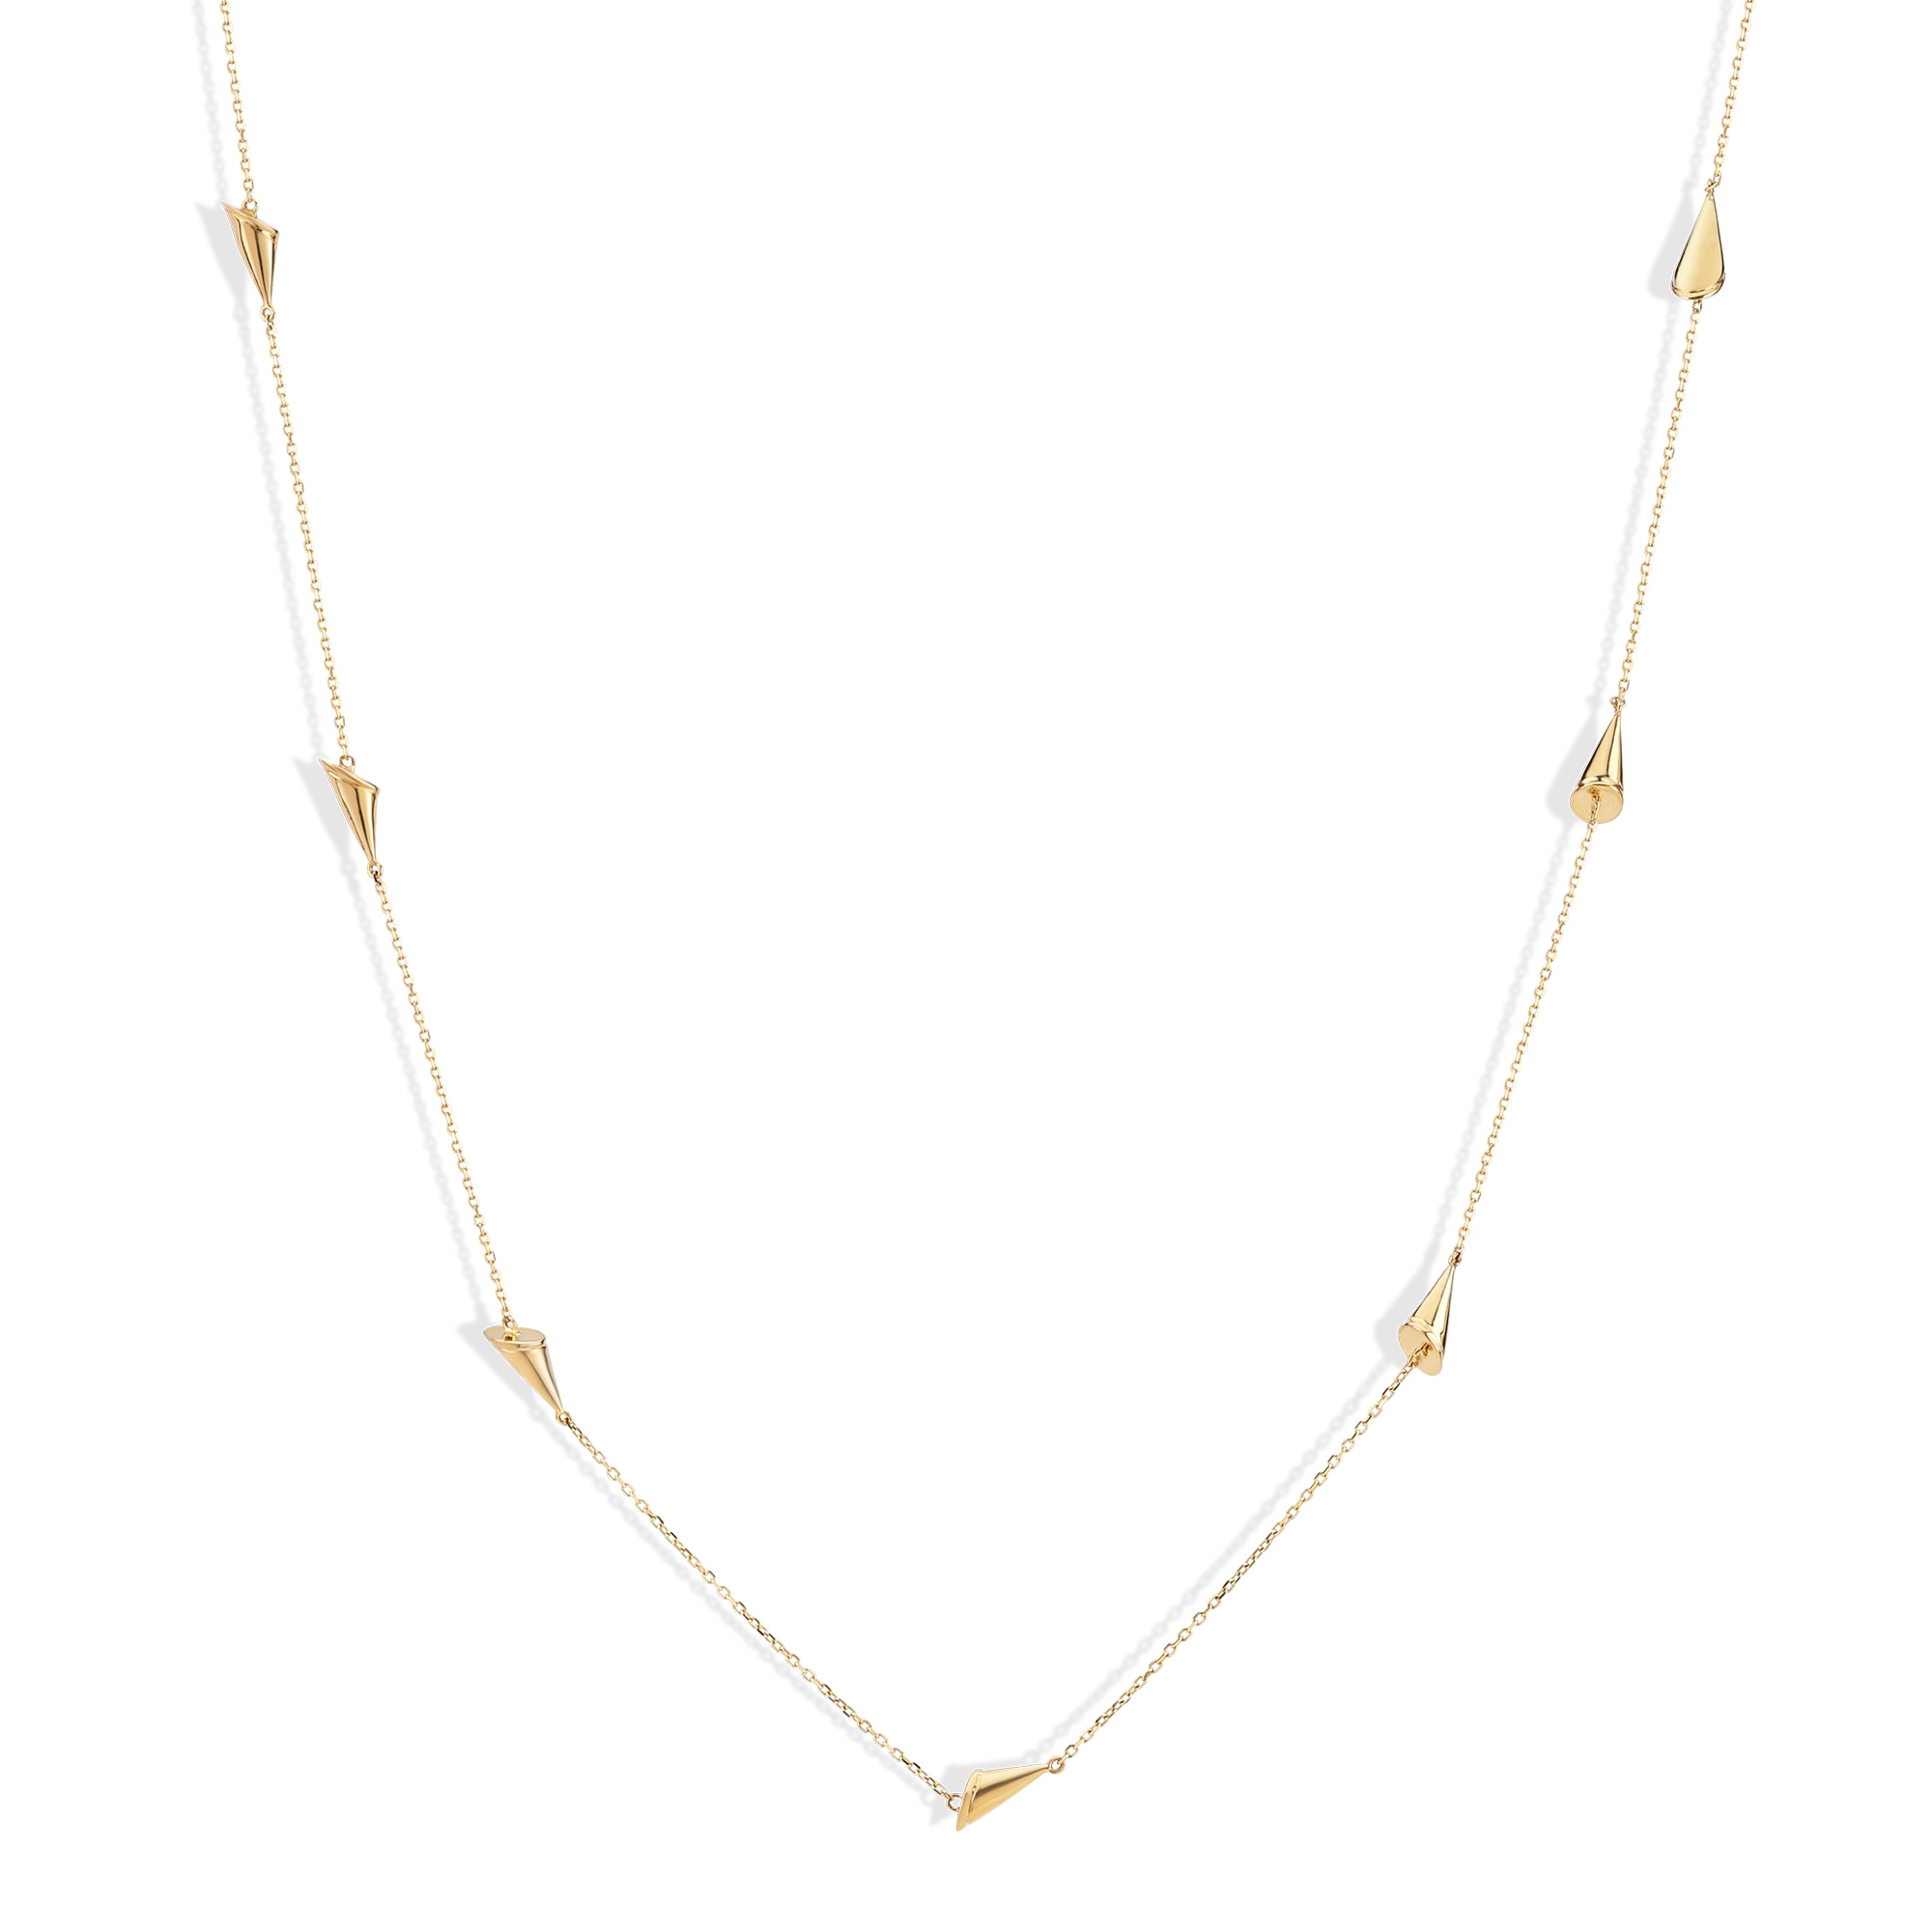 Mia Multitaskers by Tanishq 14KT Yellow Gold Necklace with Cone Design